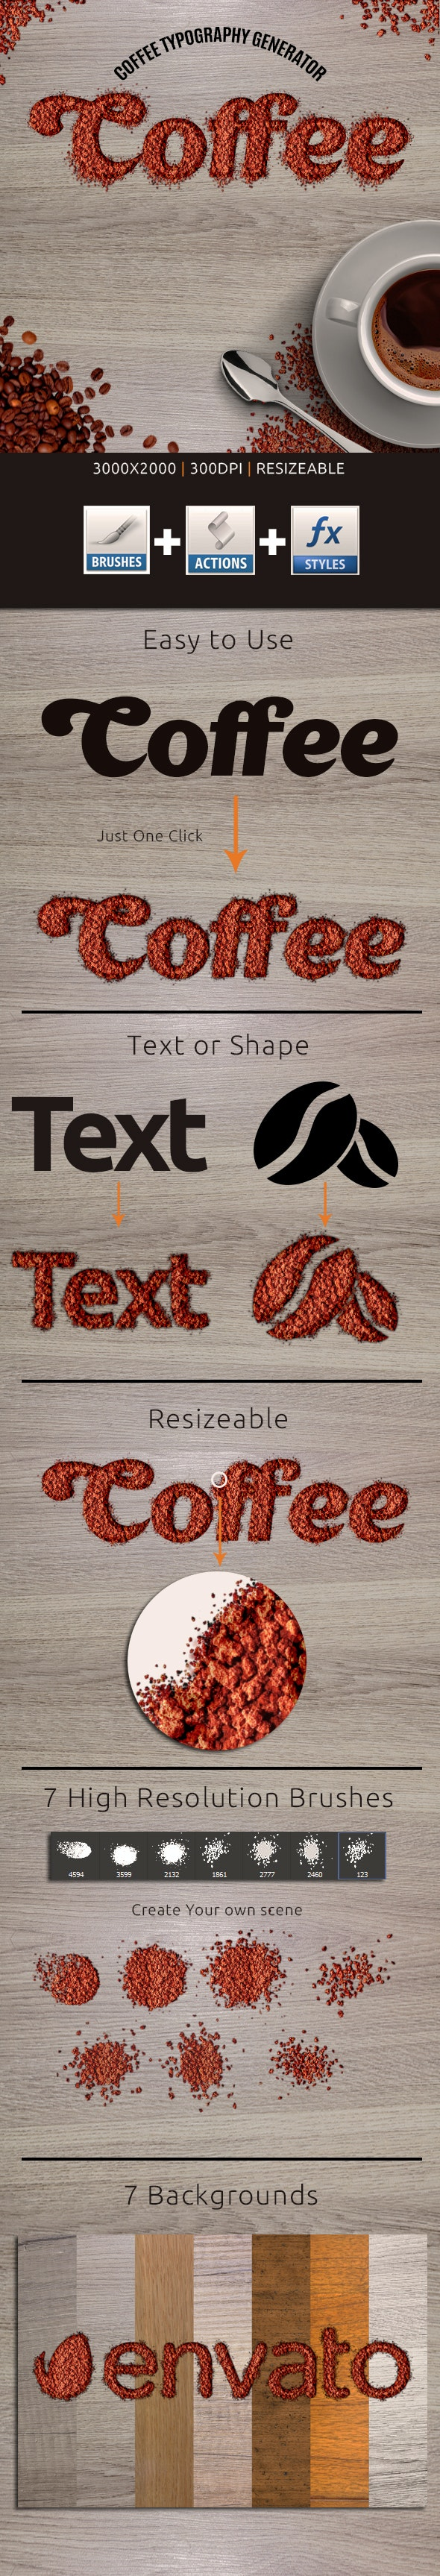 Coffee Typography Action - Actions Photoshop